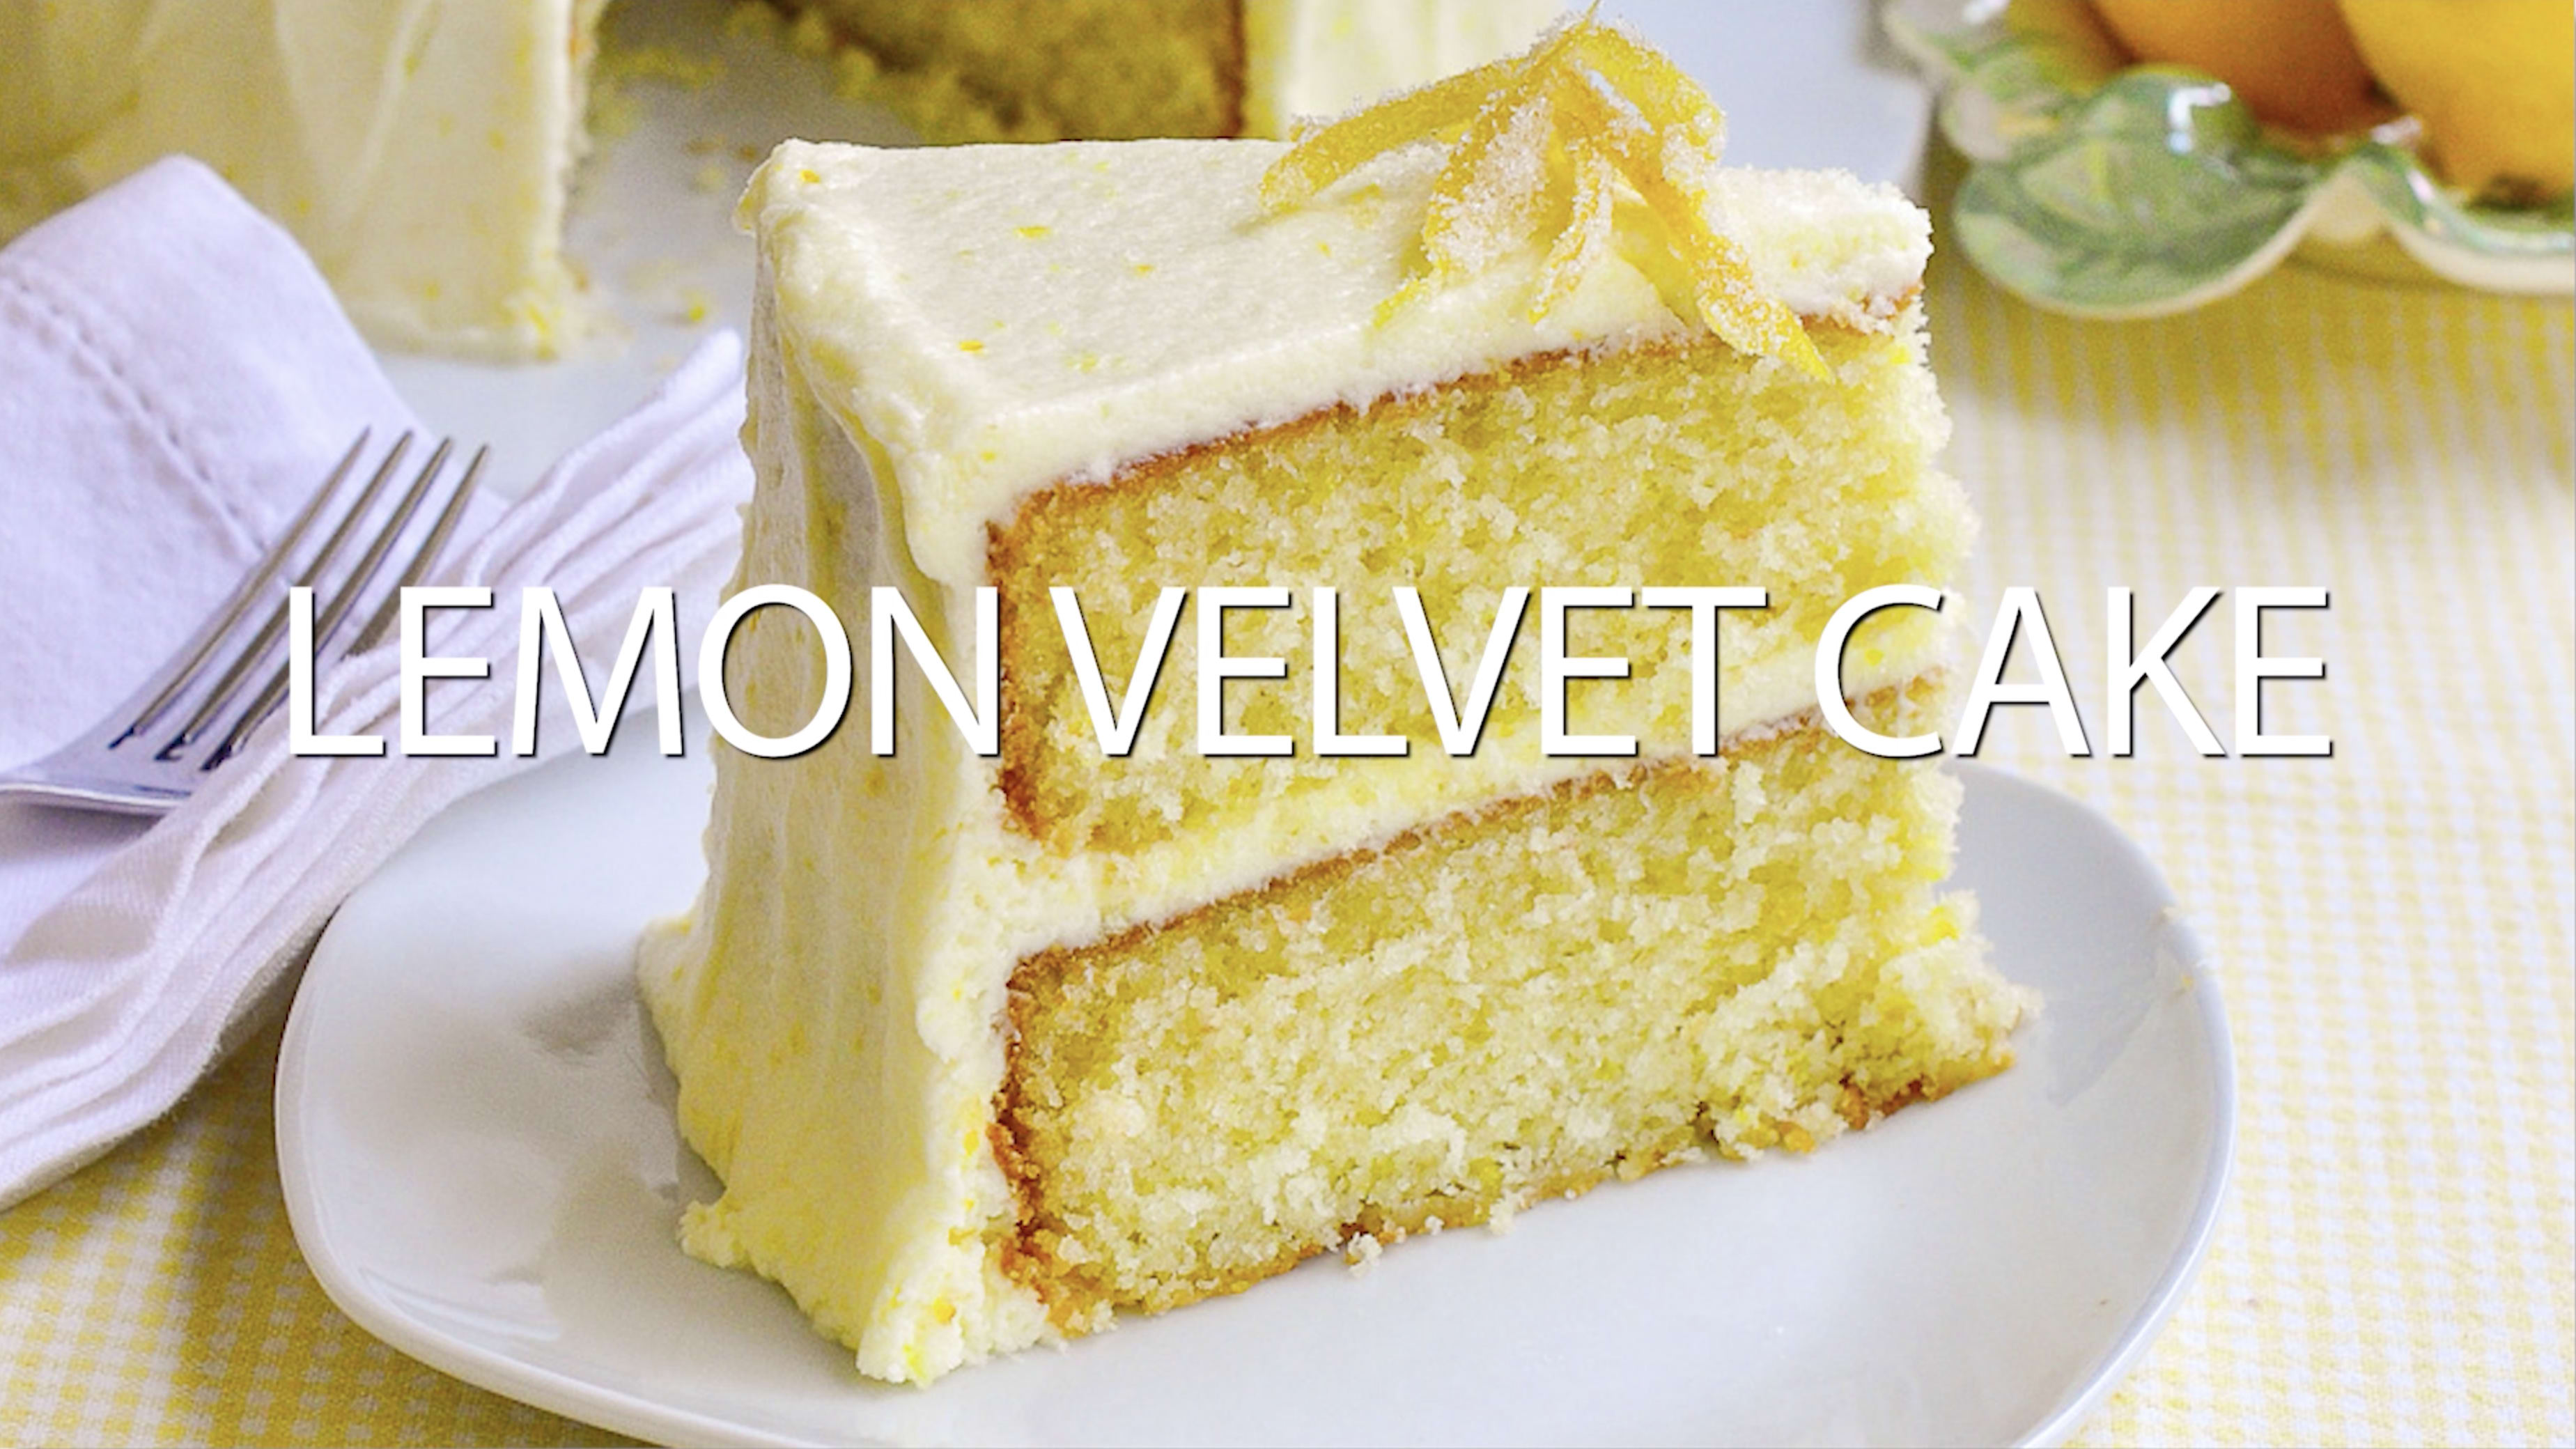 Lemon Velvet Cake Homemade Light Textured And Great Lemon Flavour